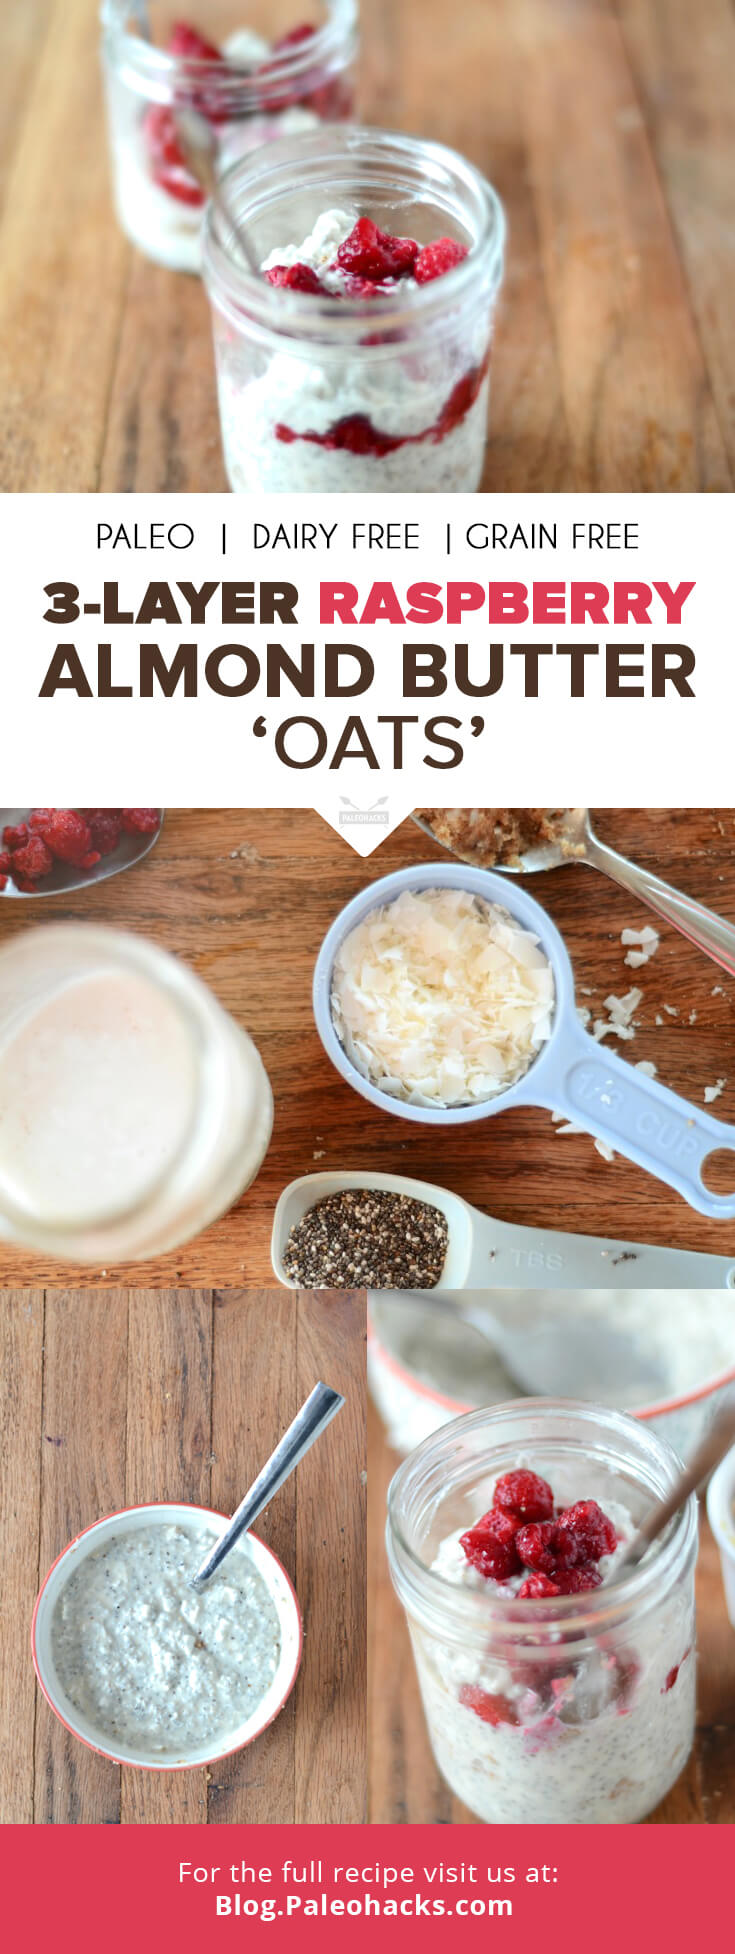 "This Paleo ""Oatmeal"" Recipe Is So Tasty, You'll Probably Want to Have It For Dessert"